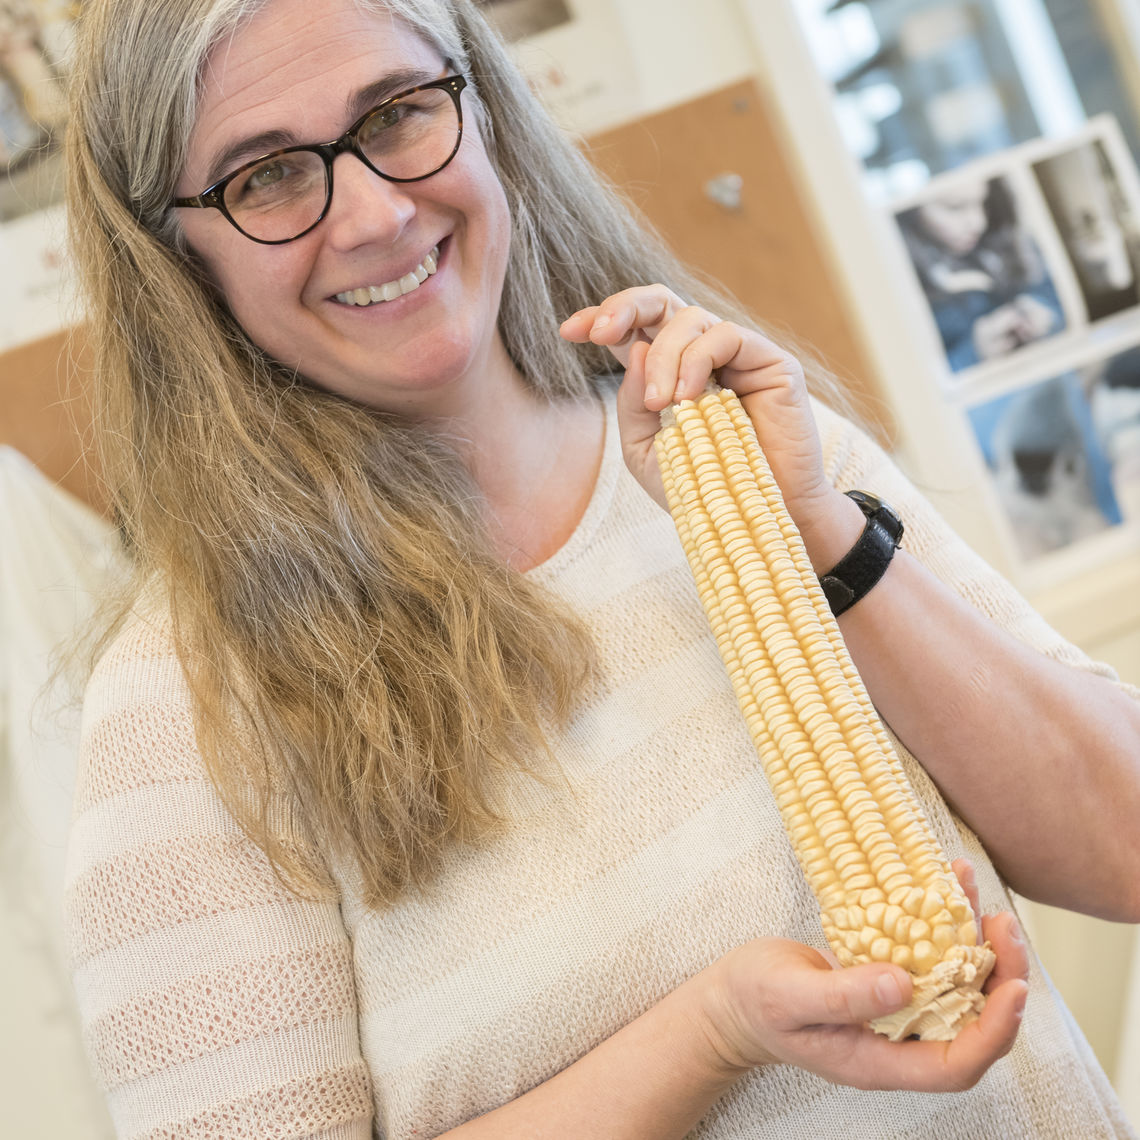 Ellie Rice's research interests include population genetics in the context of plant genetic diversity conservation. In a lab in the Barshinger Life Sciences & Philosophy Building, she displays an ear of corn—one of several she uses in her work on plant genetics.